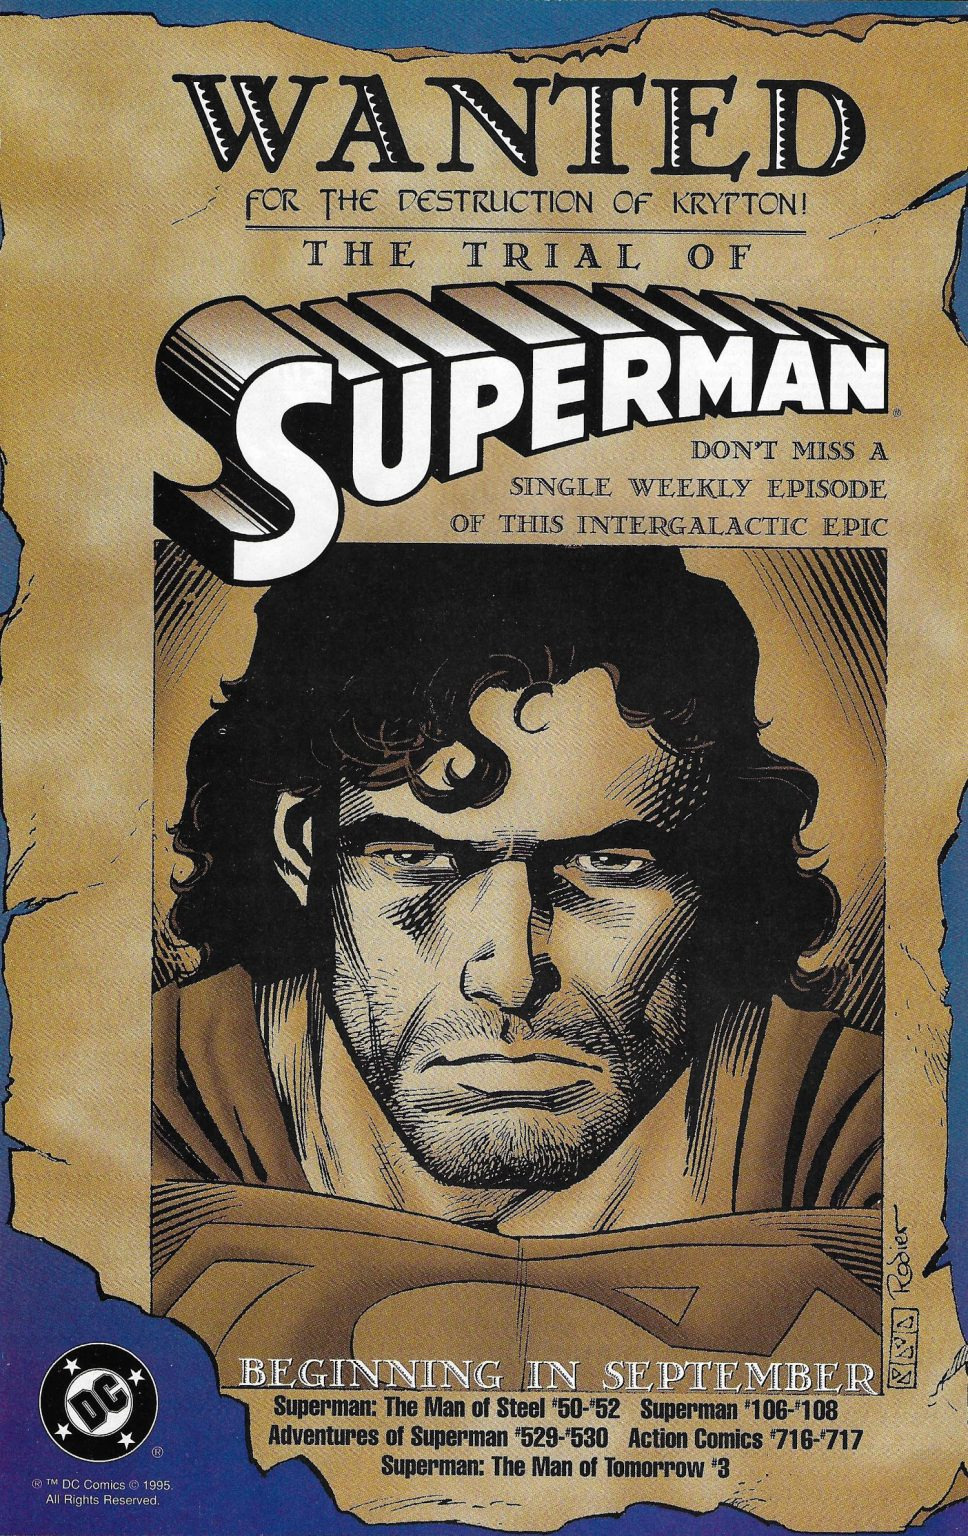 Ad-1995-Trial-of-Superman-Ad-968x1536